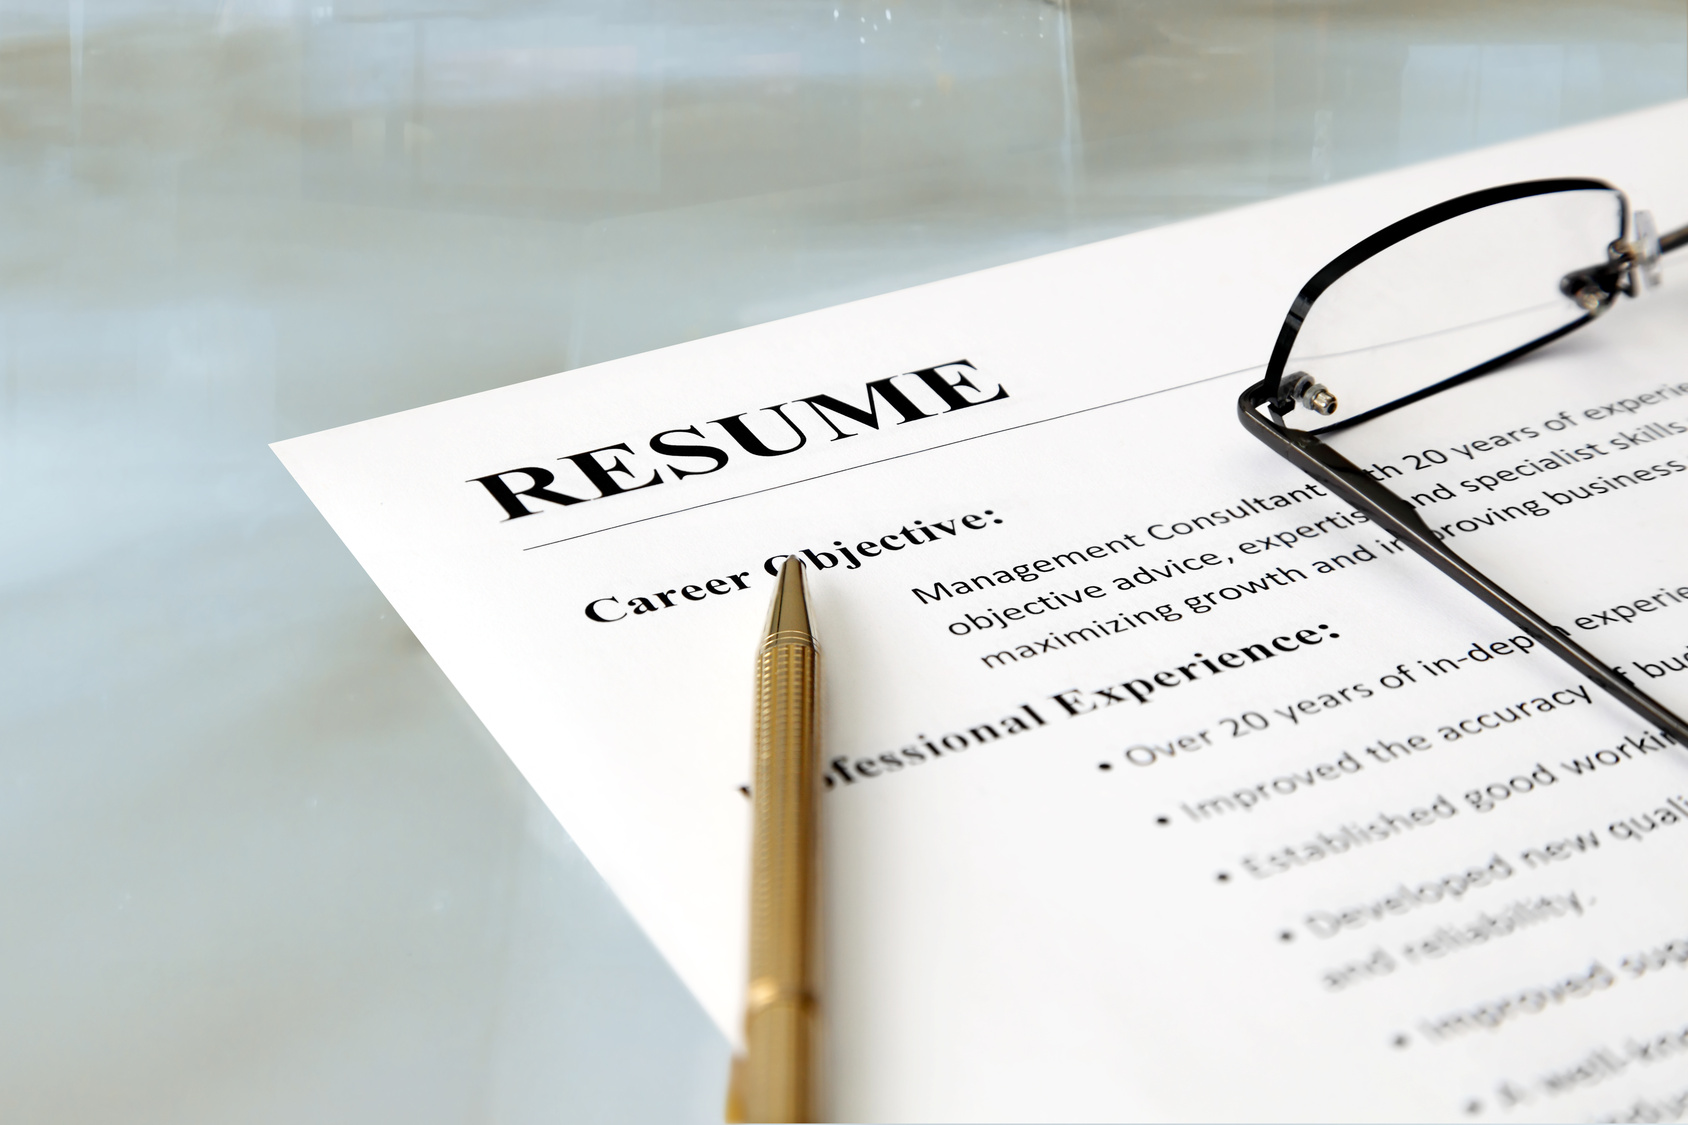 landing a job what matters part resume details part 2 resume details